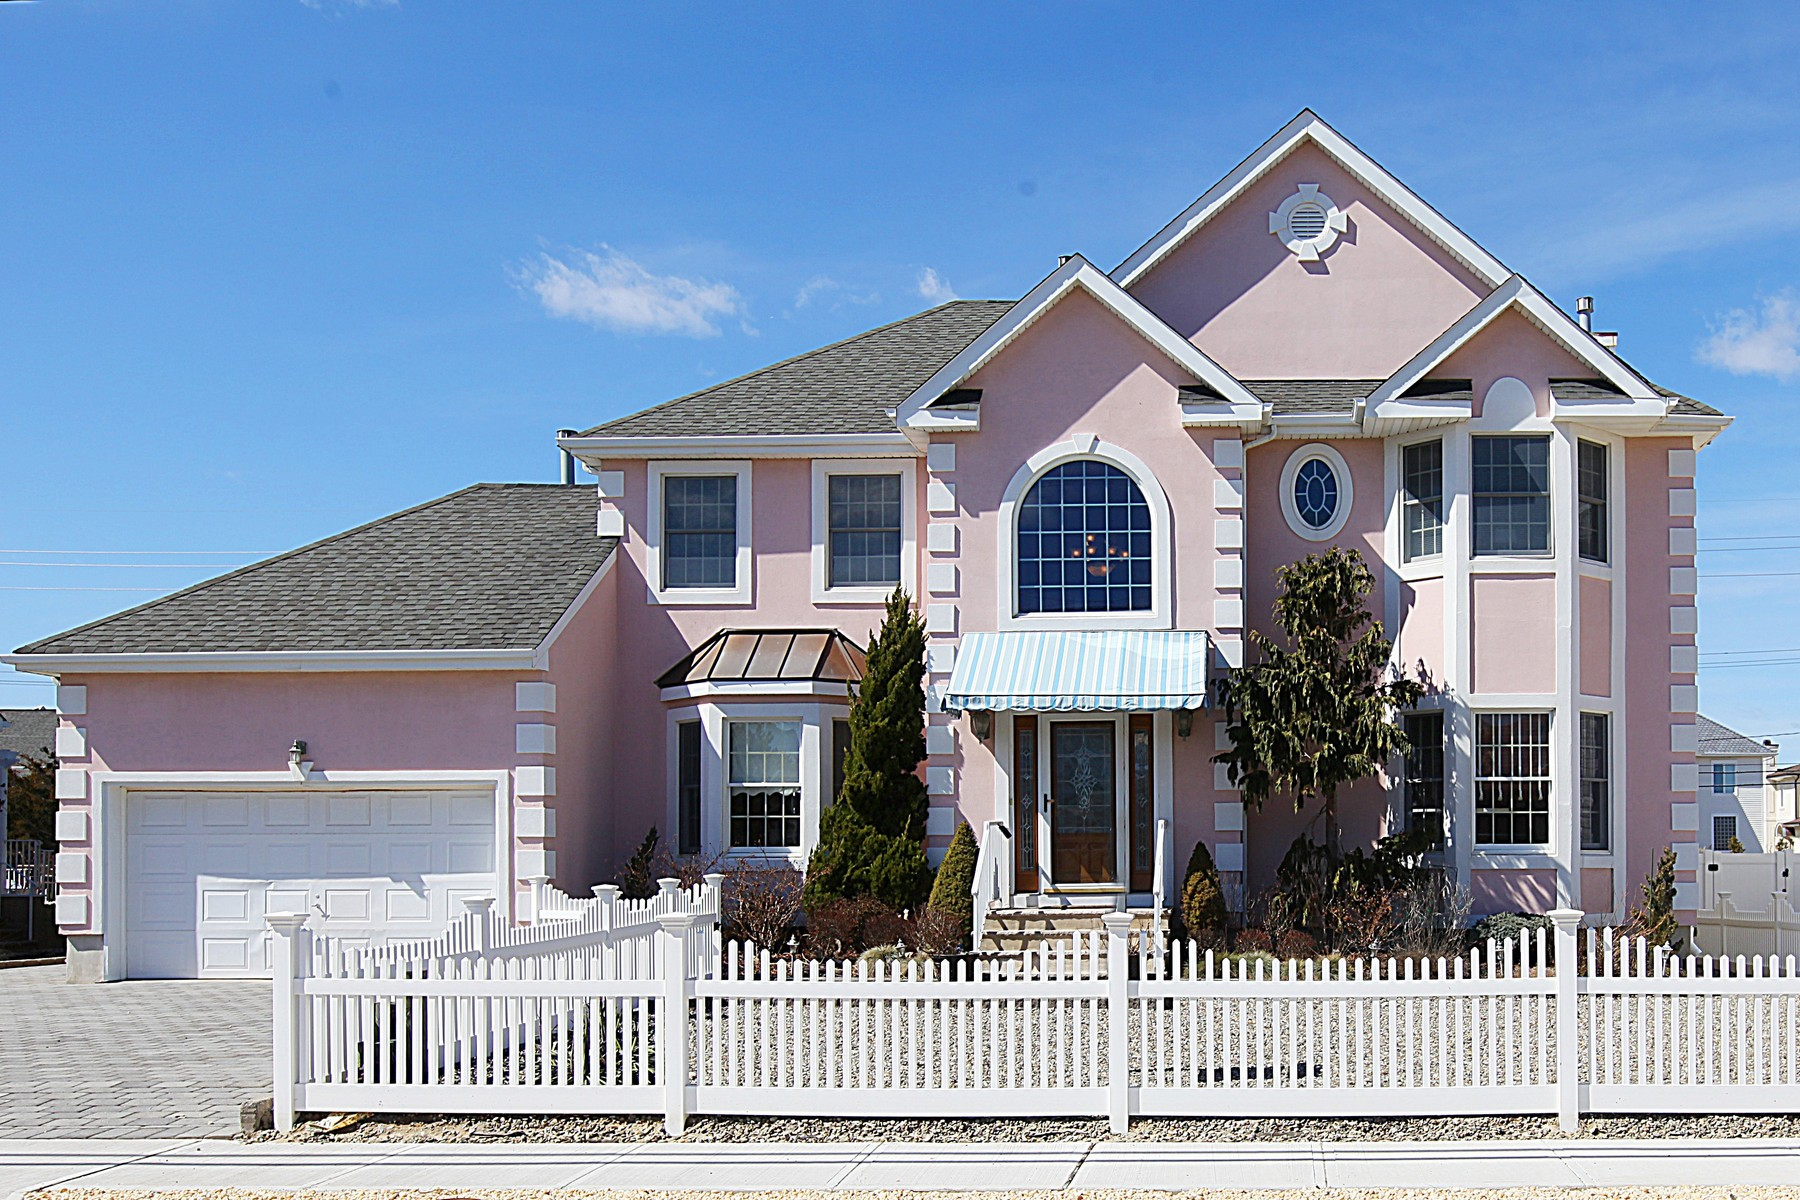 Maison unifamiliale pour l Vente à Jewel By The Sea 179 North Highway 35 Mantoloking, New Jersey, 08738 États-Unis